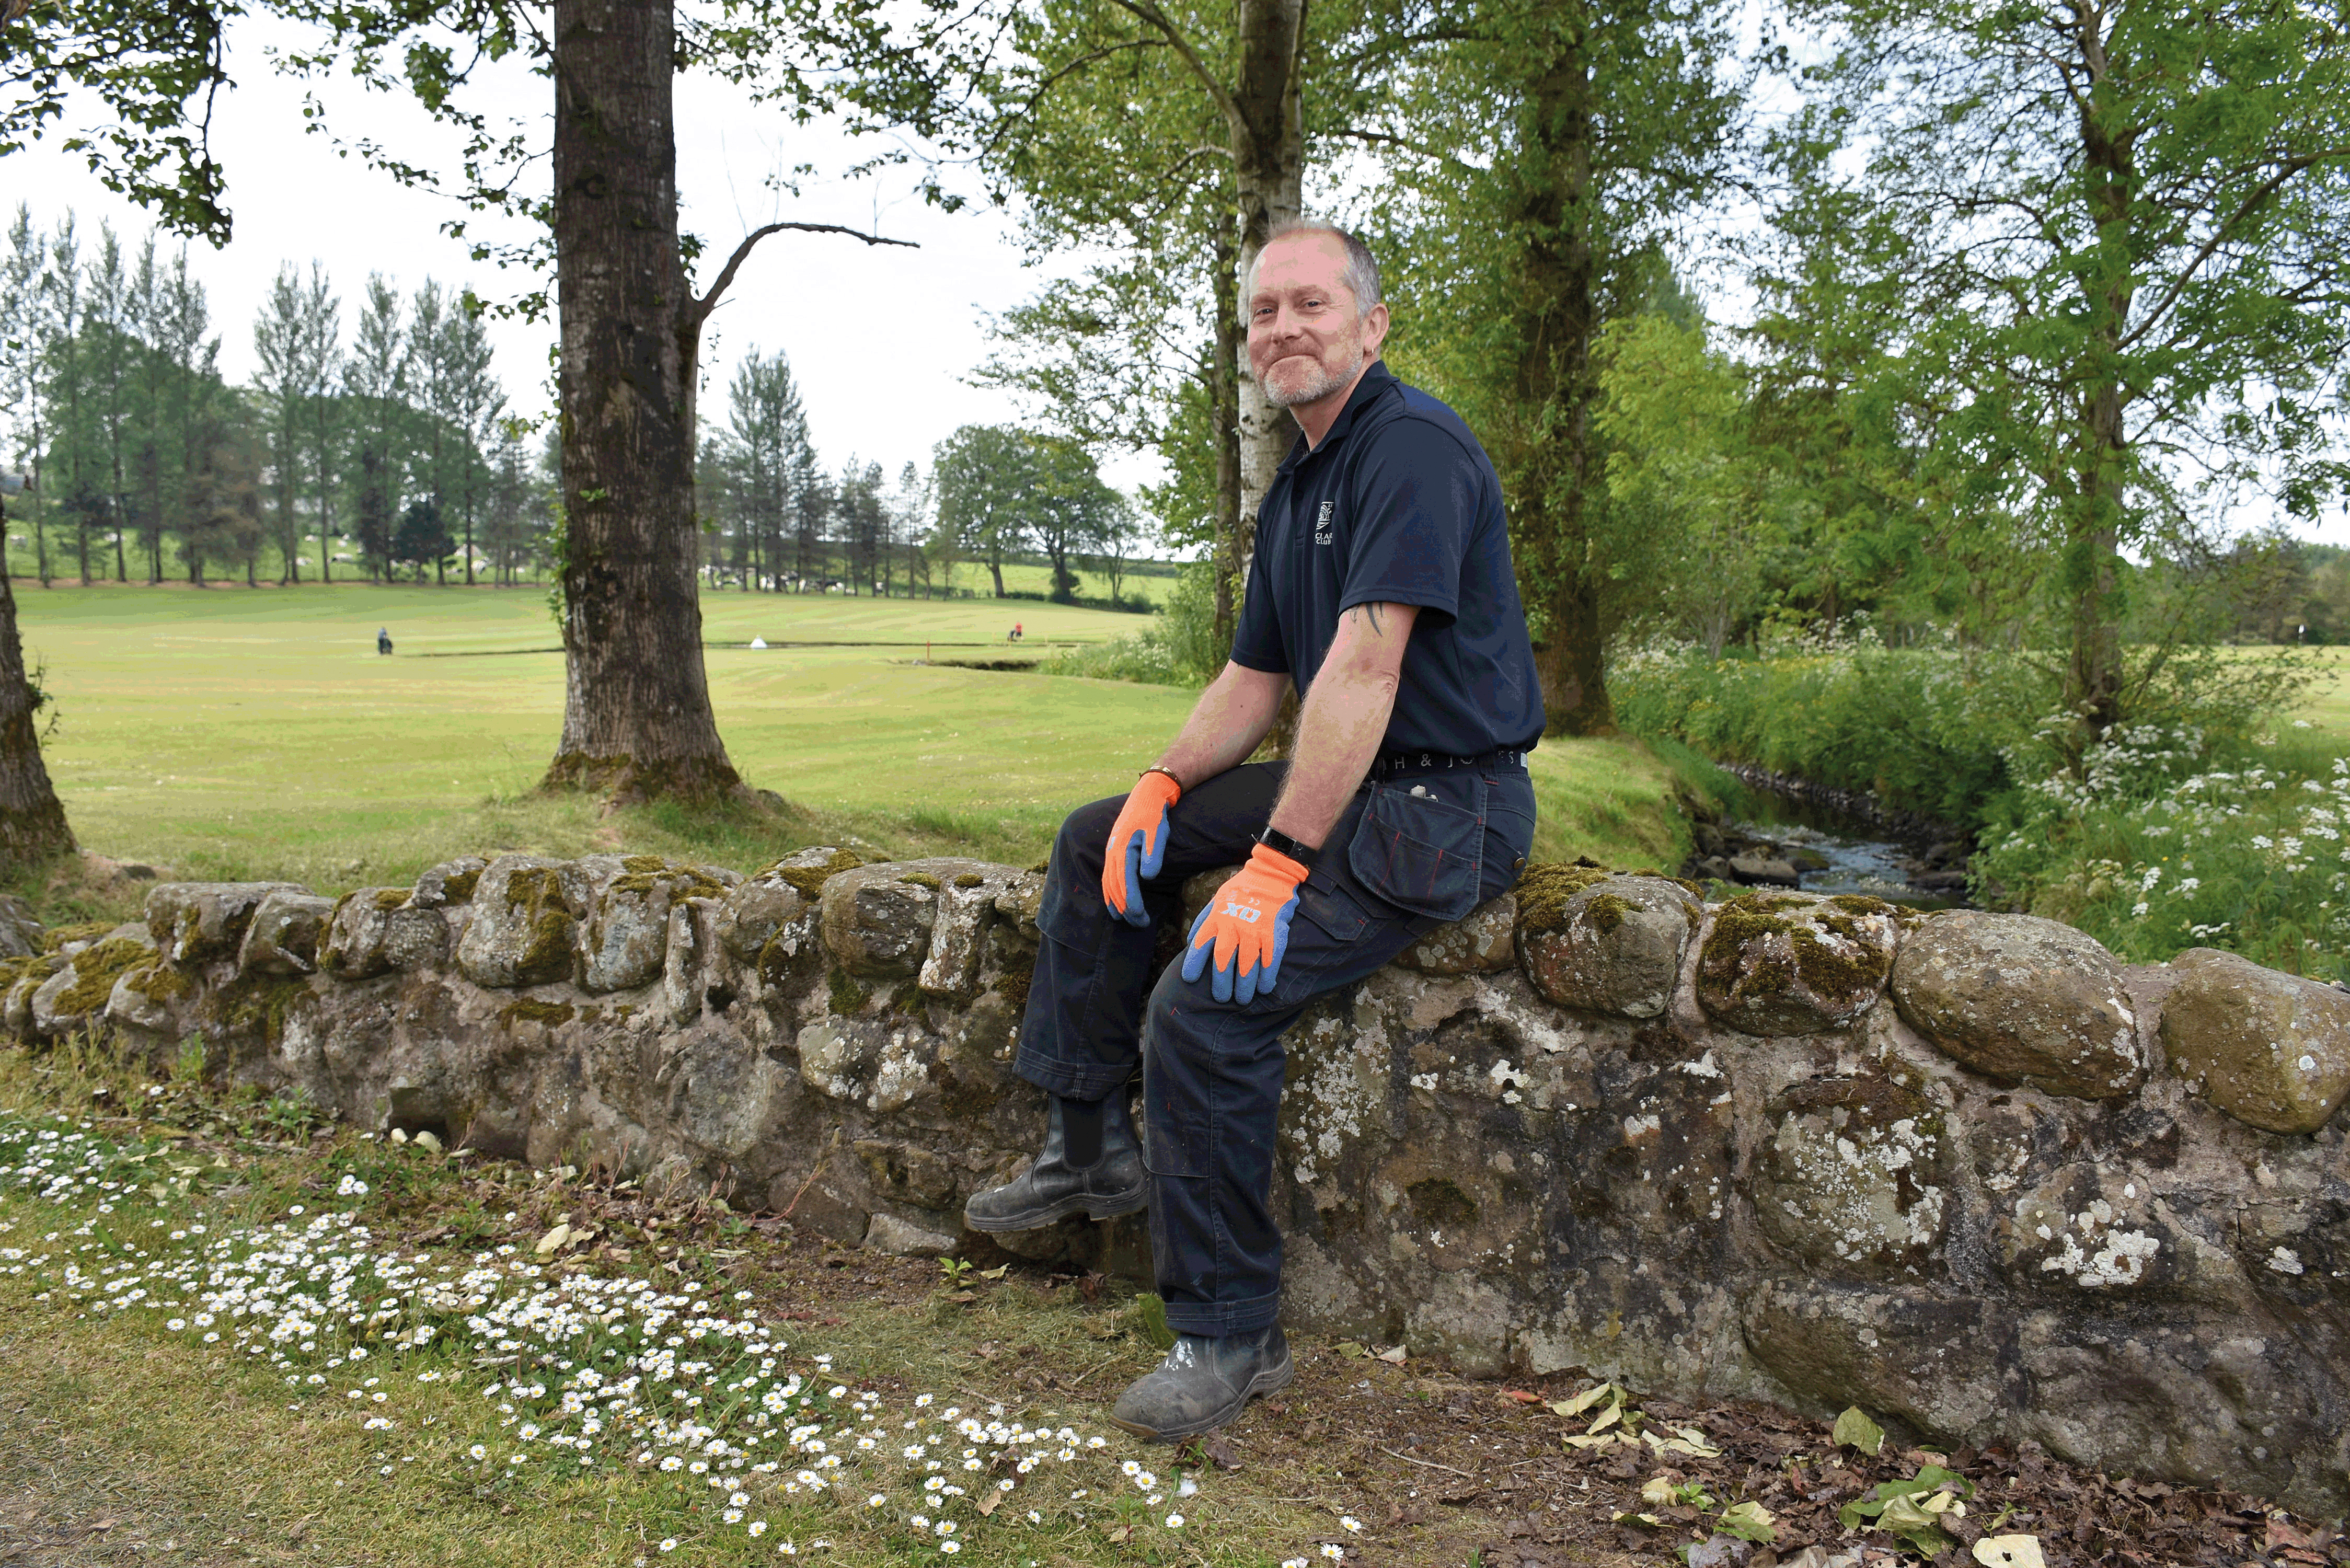 Ballyclare Golf Club - Lockdown over ... Background